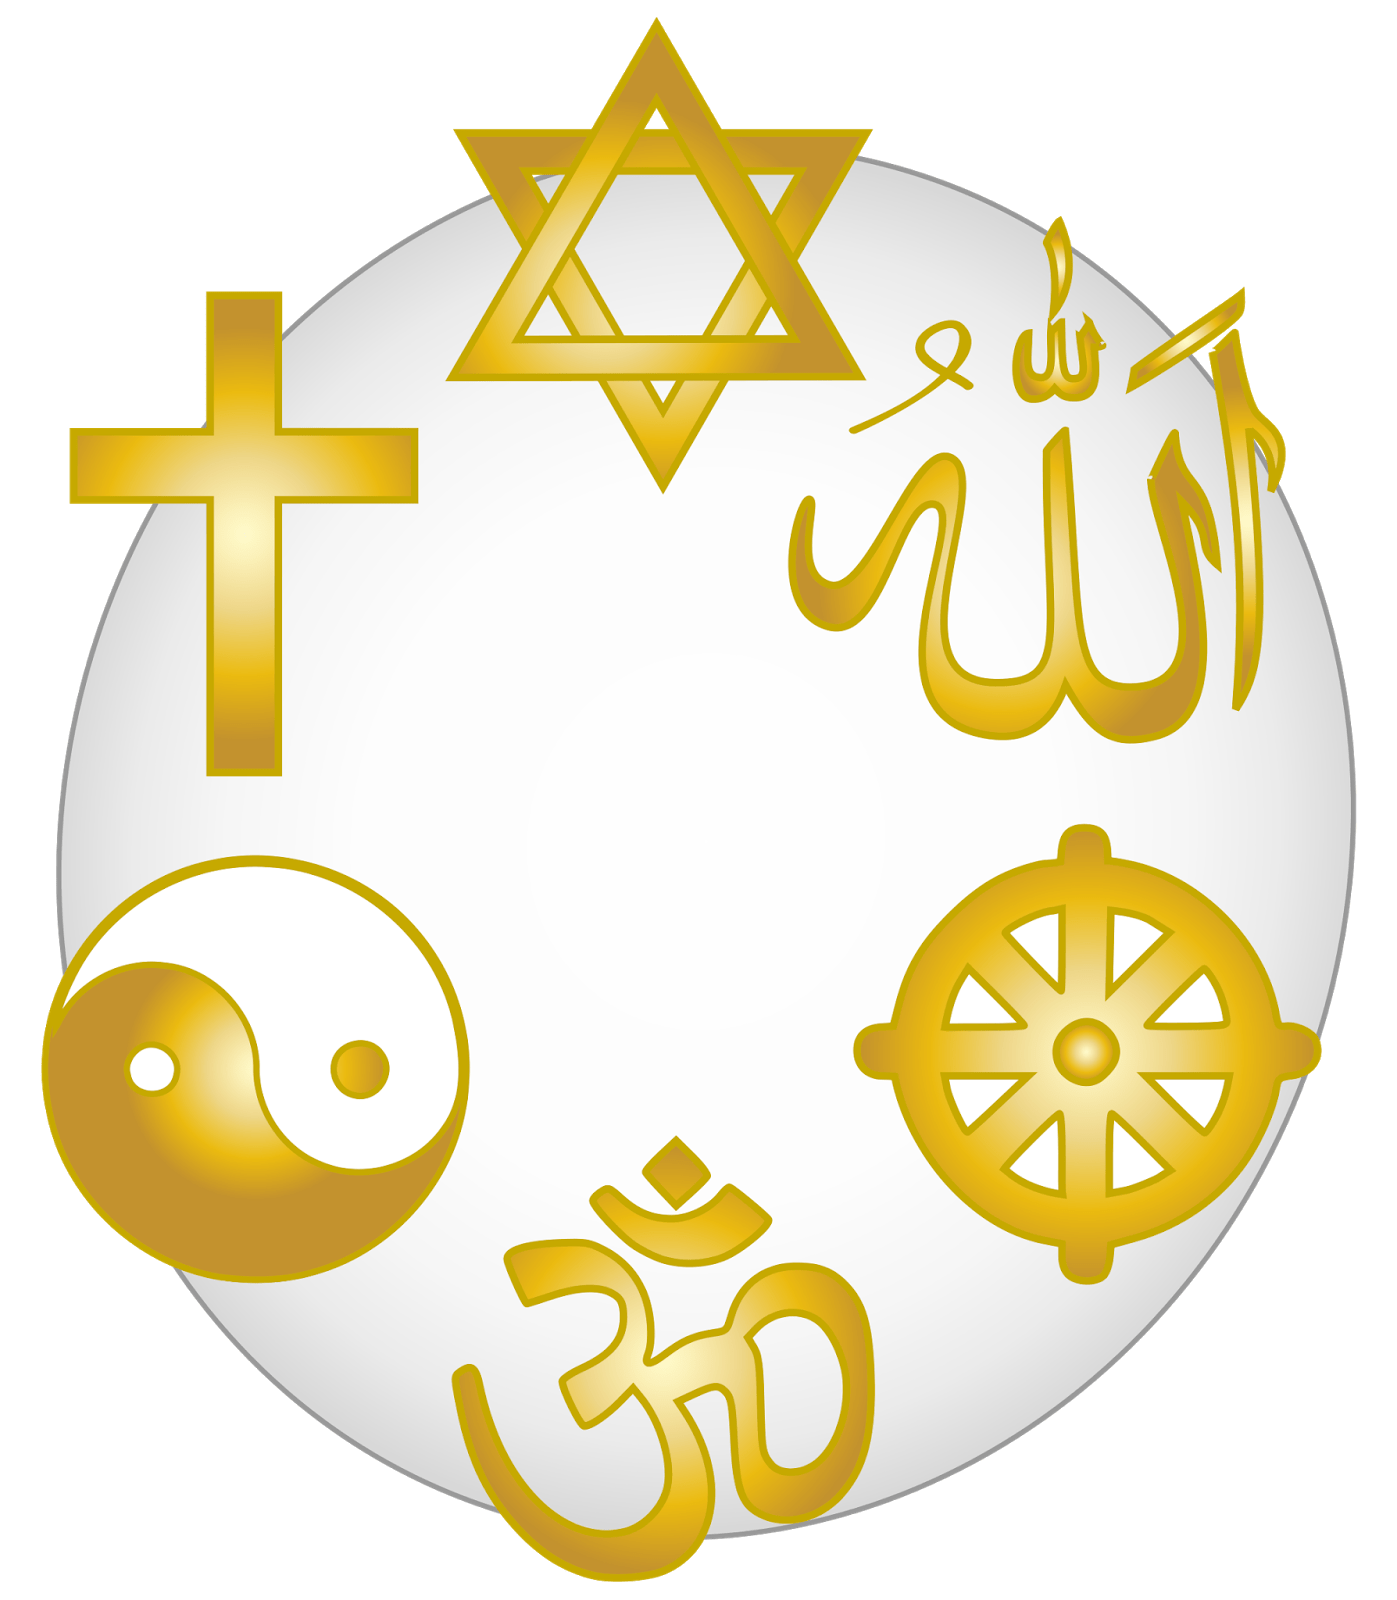 hight resolution of world religion cliparts 2944064 license personal use